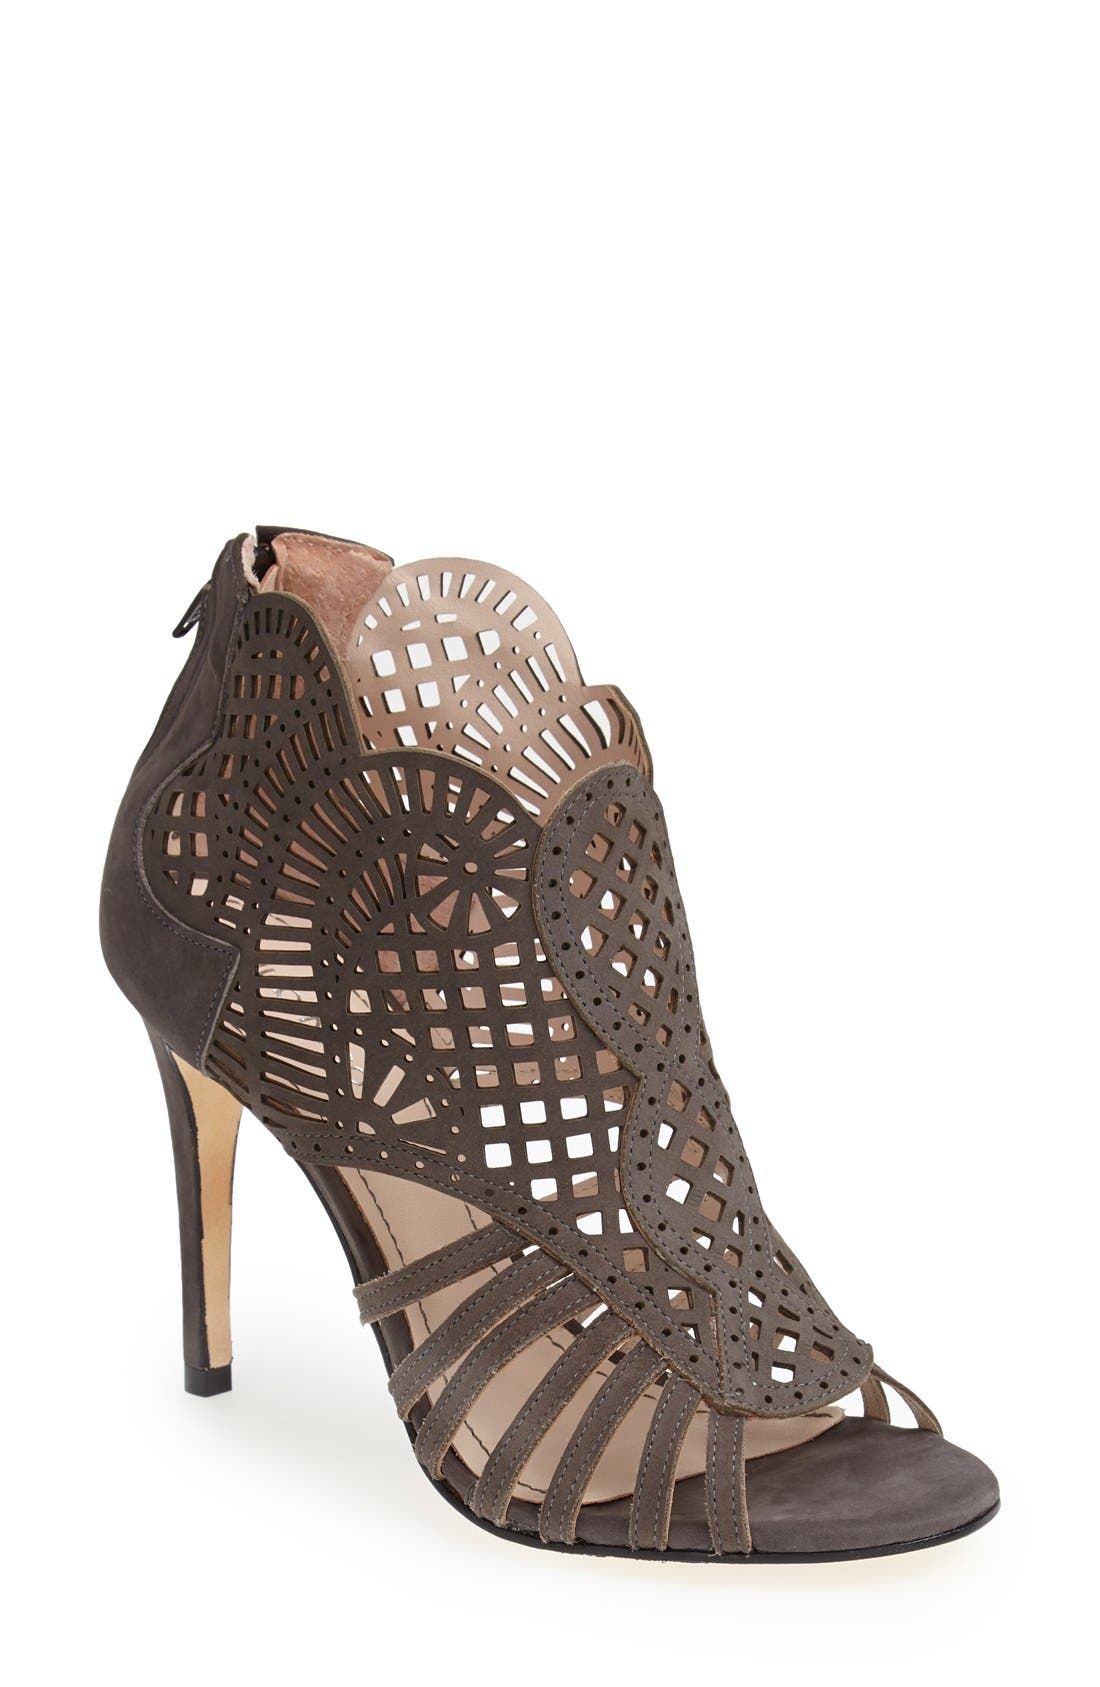 where to buy klub nico shoes mirelle's restaurant post 83079